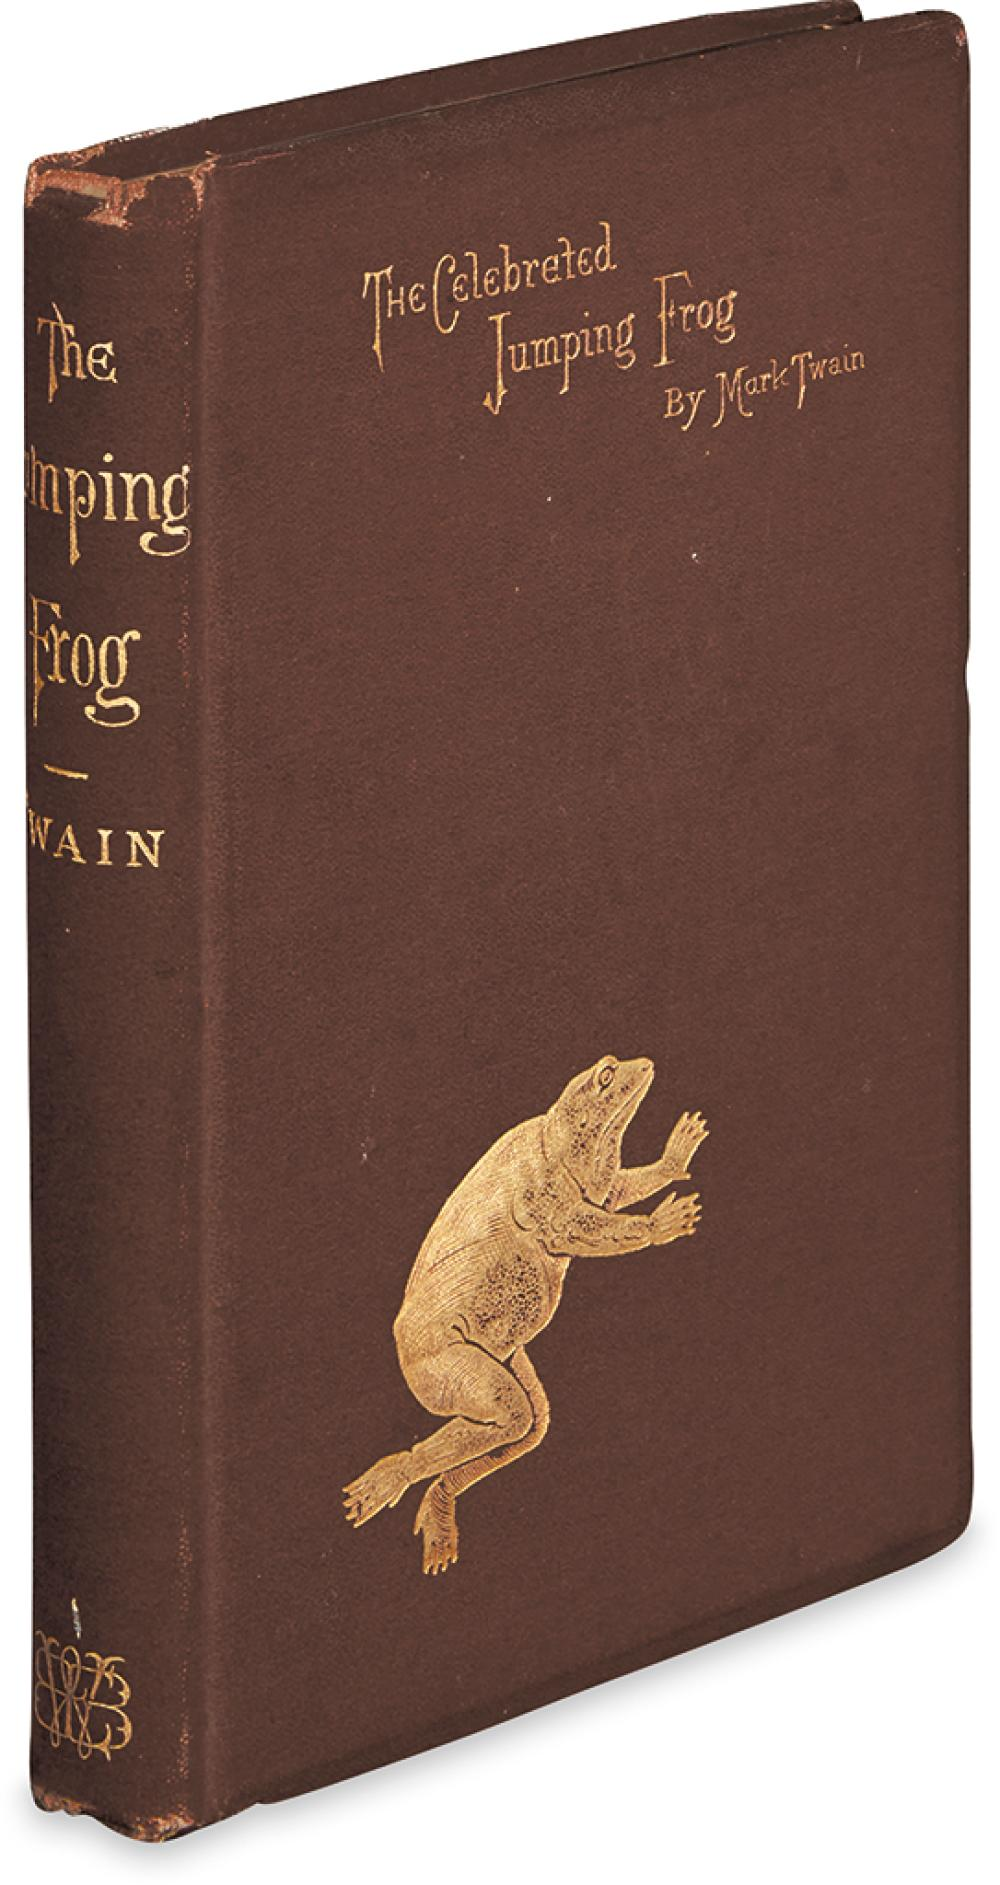 TWAIN, MARK. Celebrated Jumping Frog of Calaveras County.